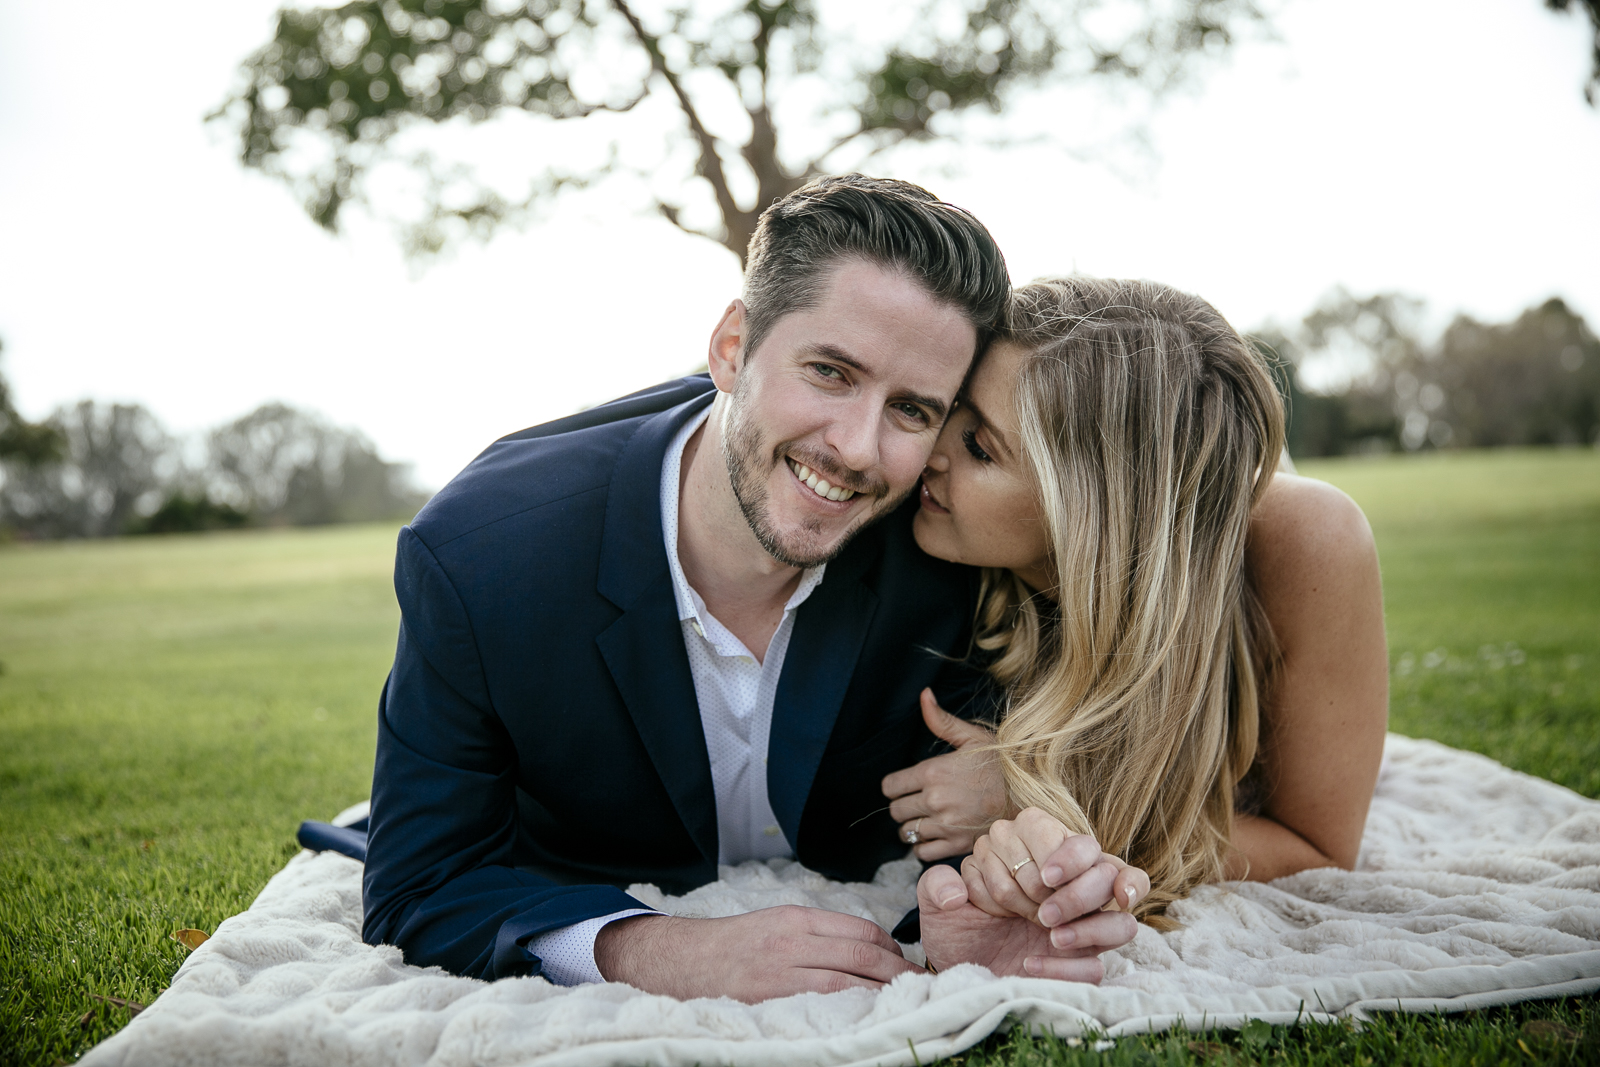 HALEY_&_MICHAEL_ENGAGEMENT_EMBARCADERO_March 03, 2016_IMG_9516.JPG